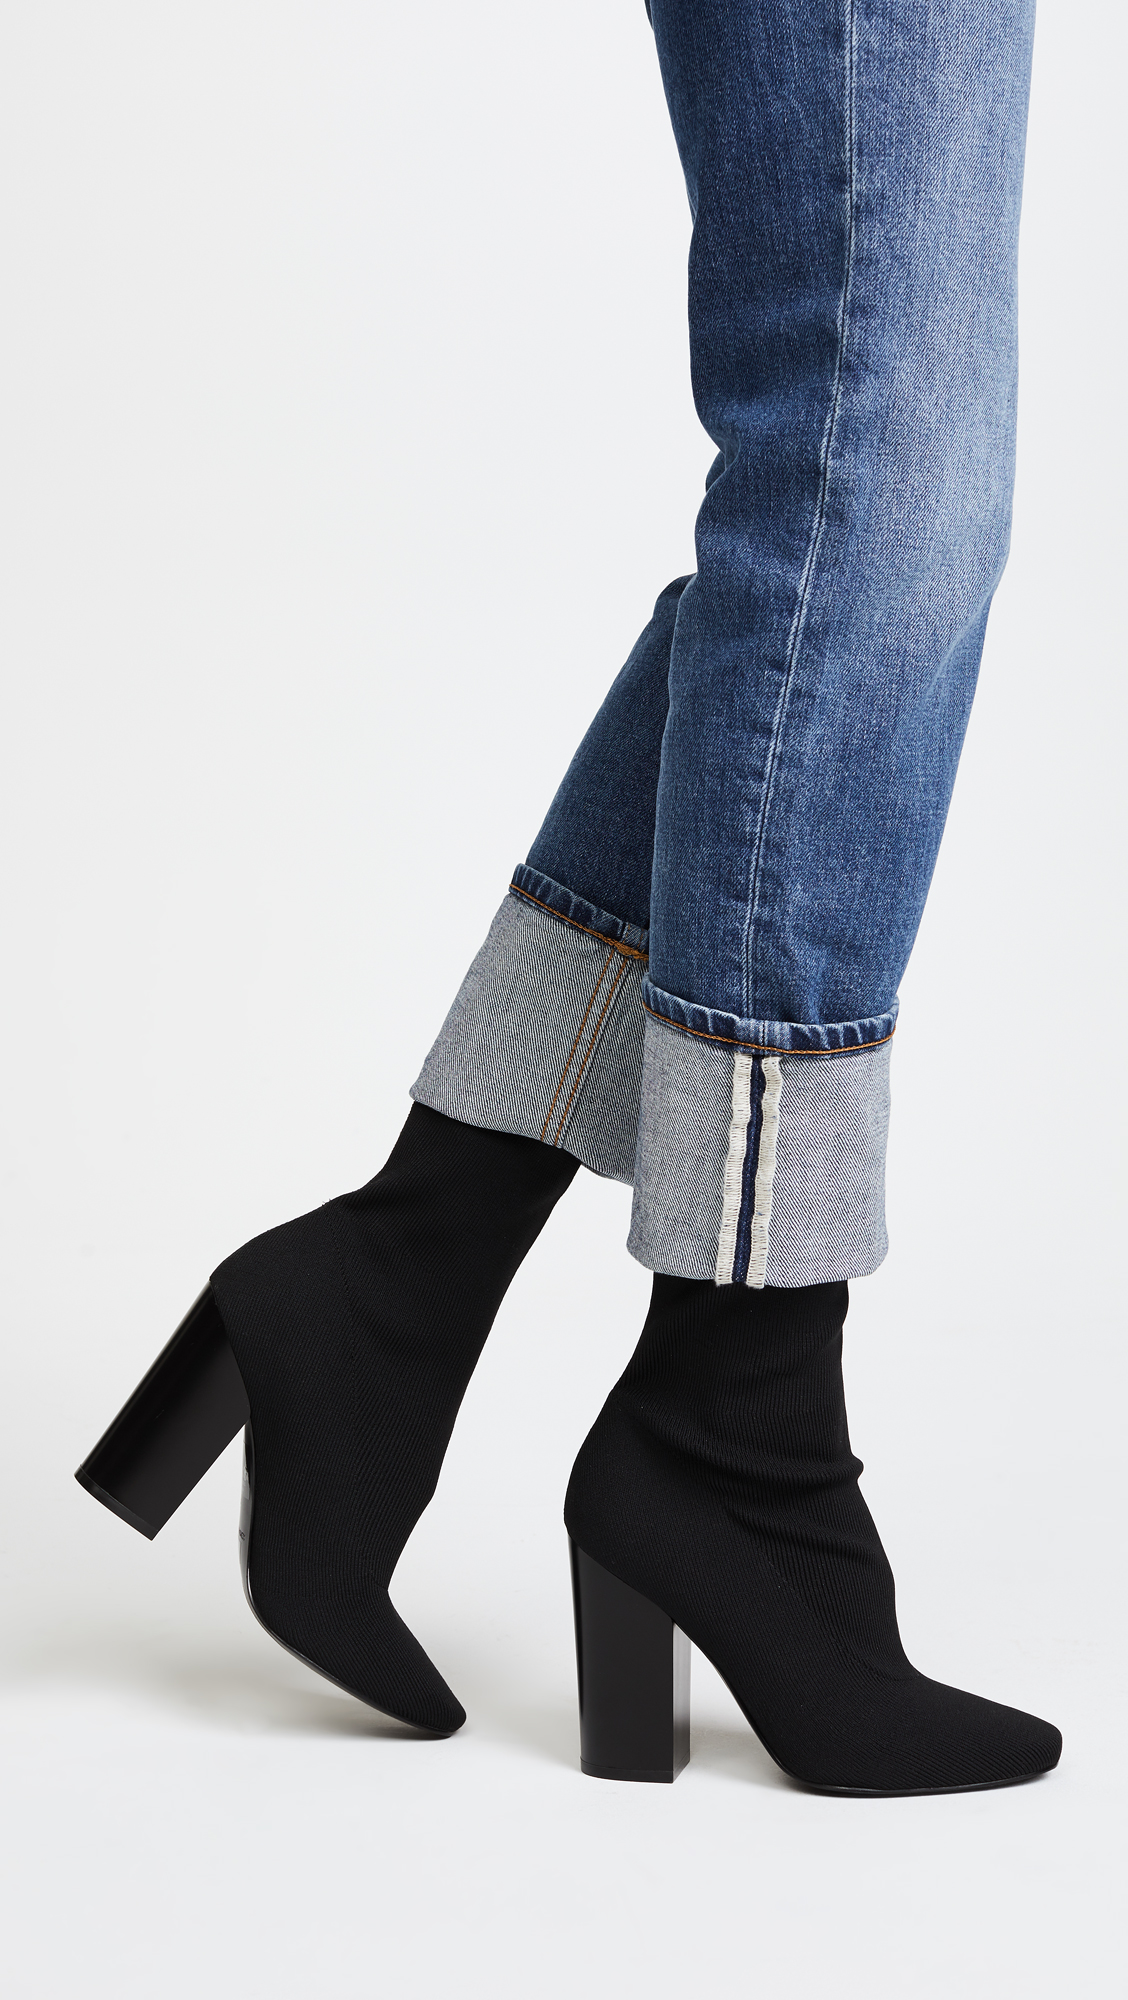 KENDALL + KYLIE Hailey Textile Booties 2yyC9E